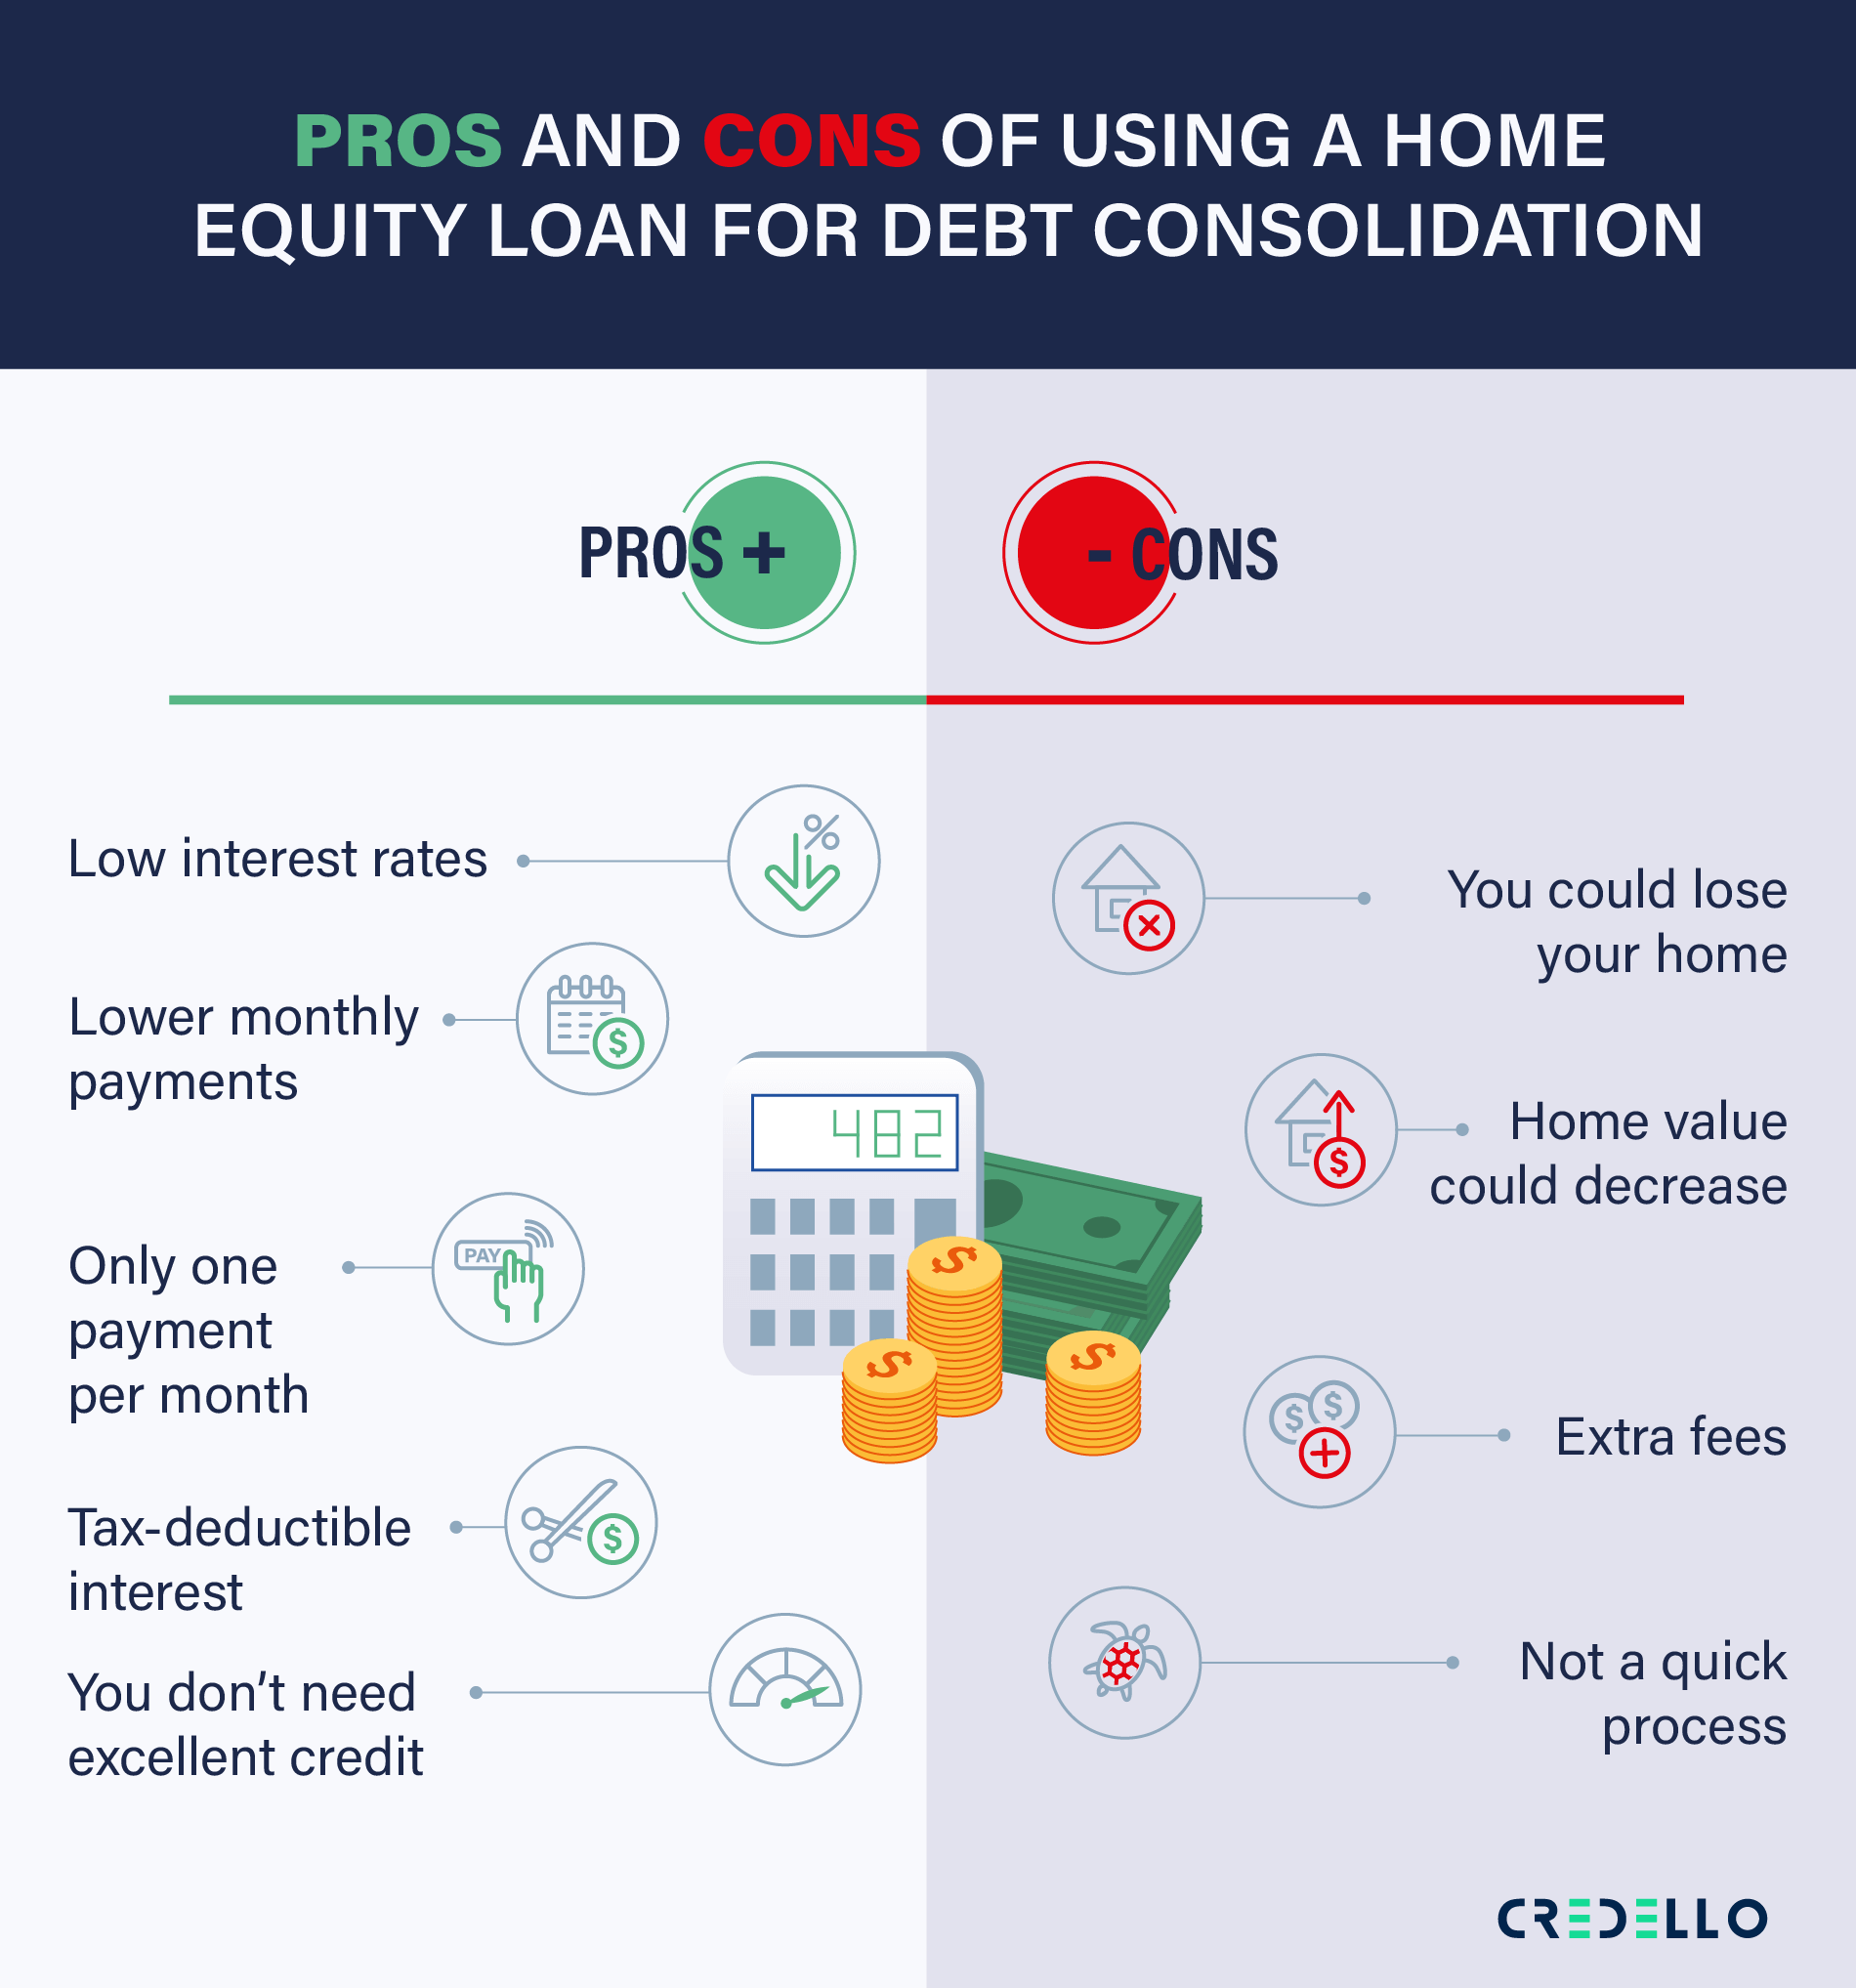 Pros and Cons of Using A Home Equity Loan for Debt Consolidation